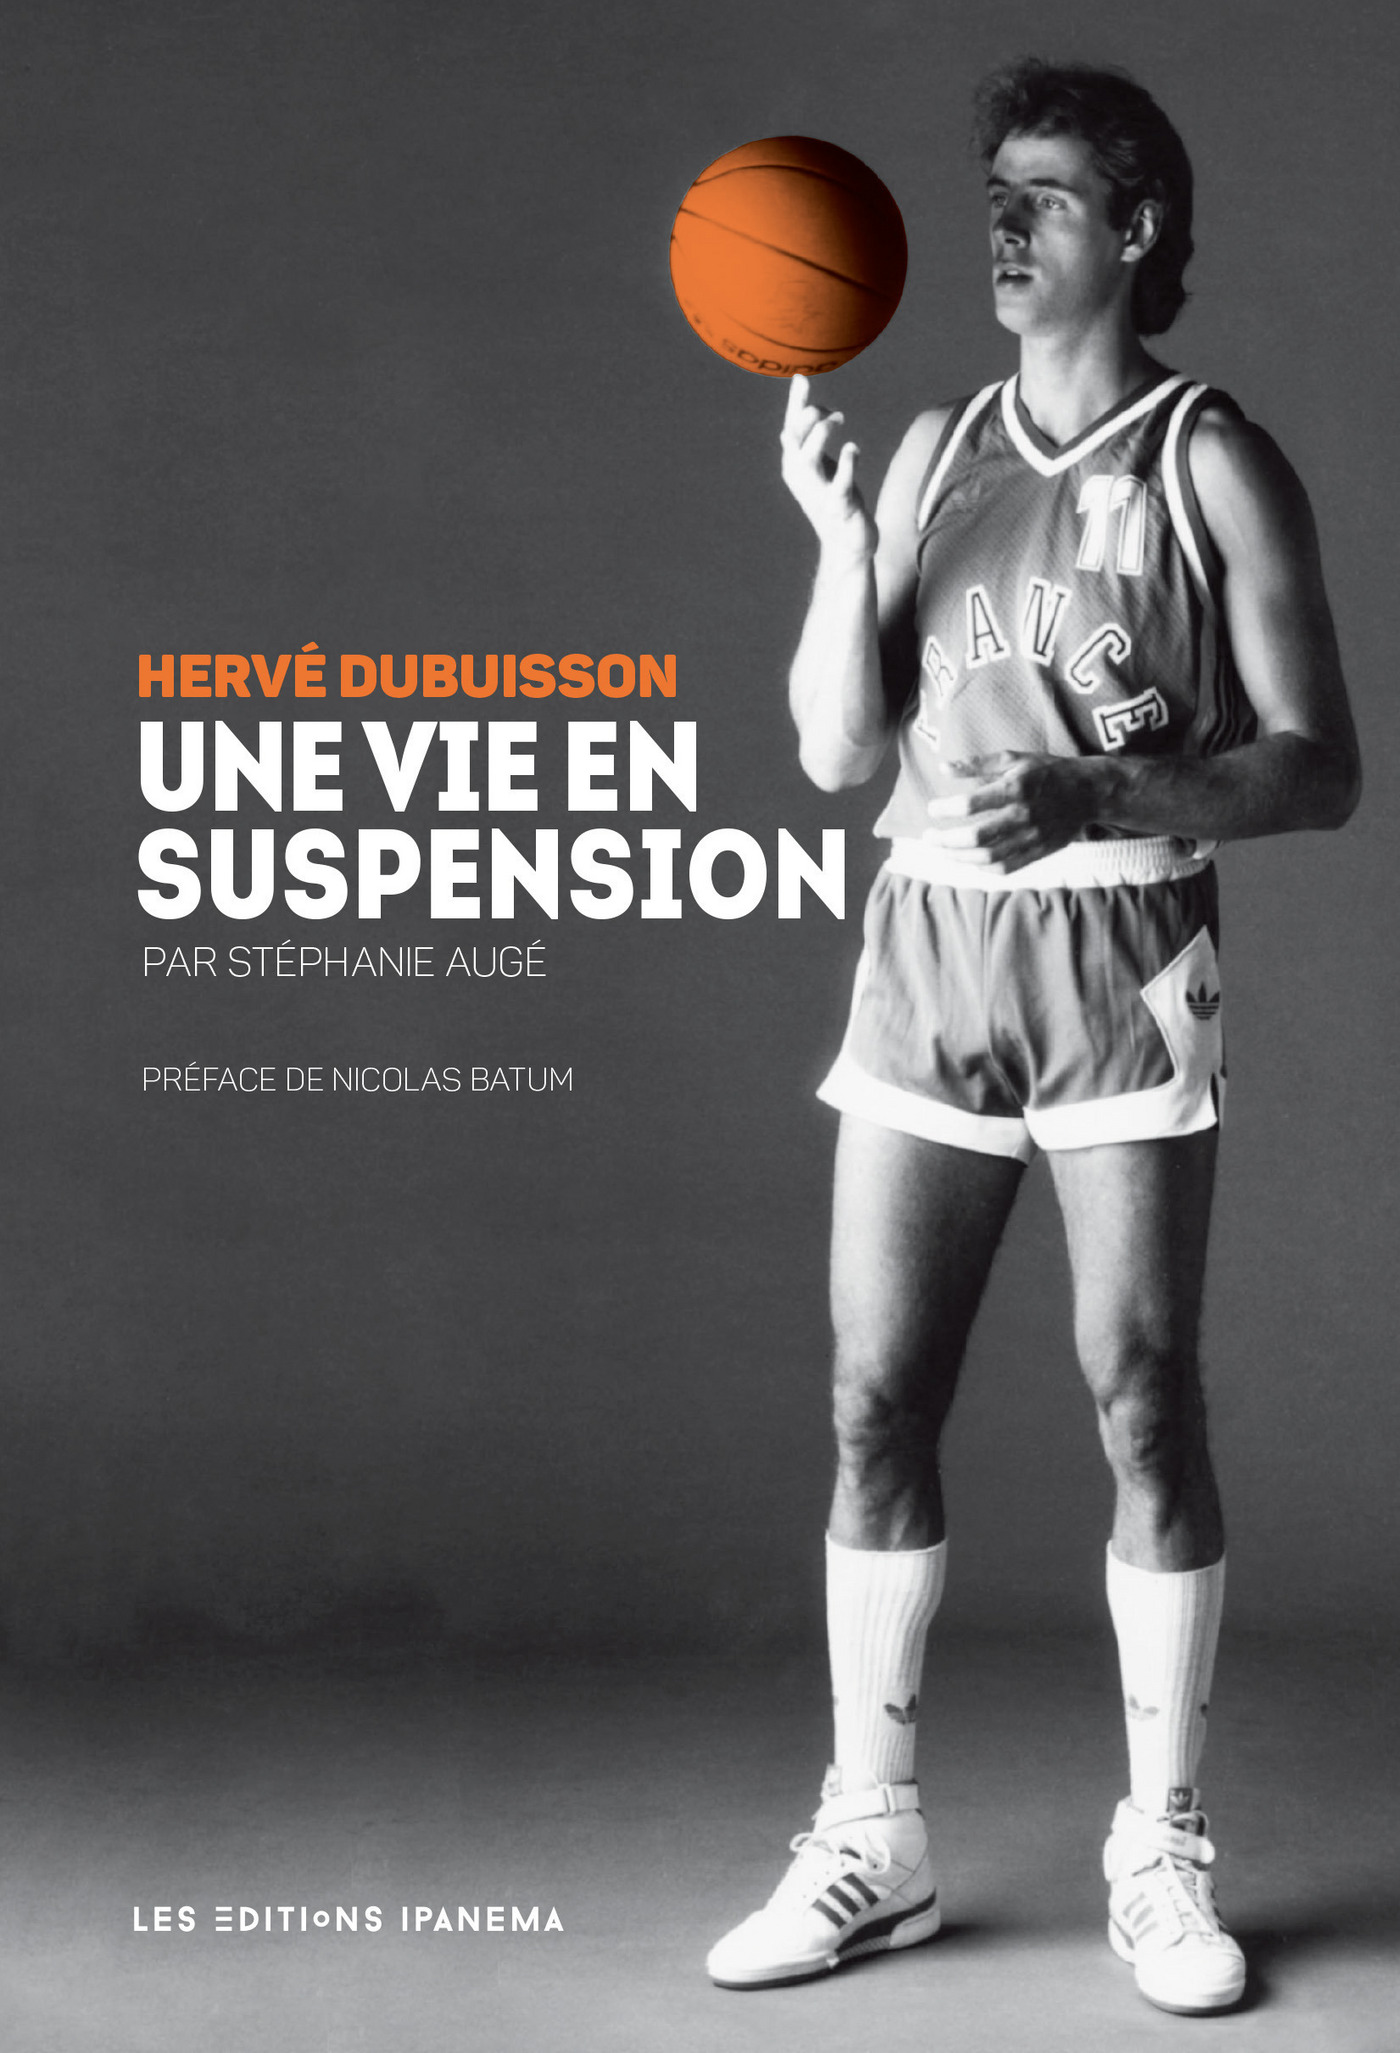 Hervé Dubuisson, une vie en suspension